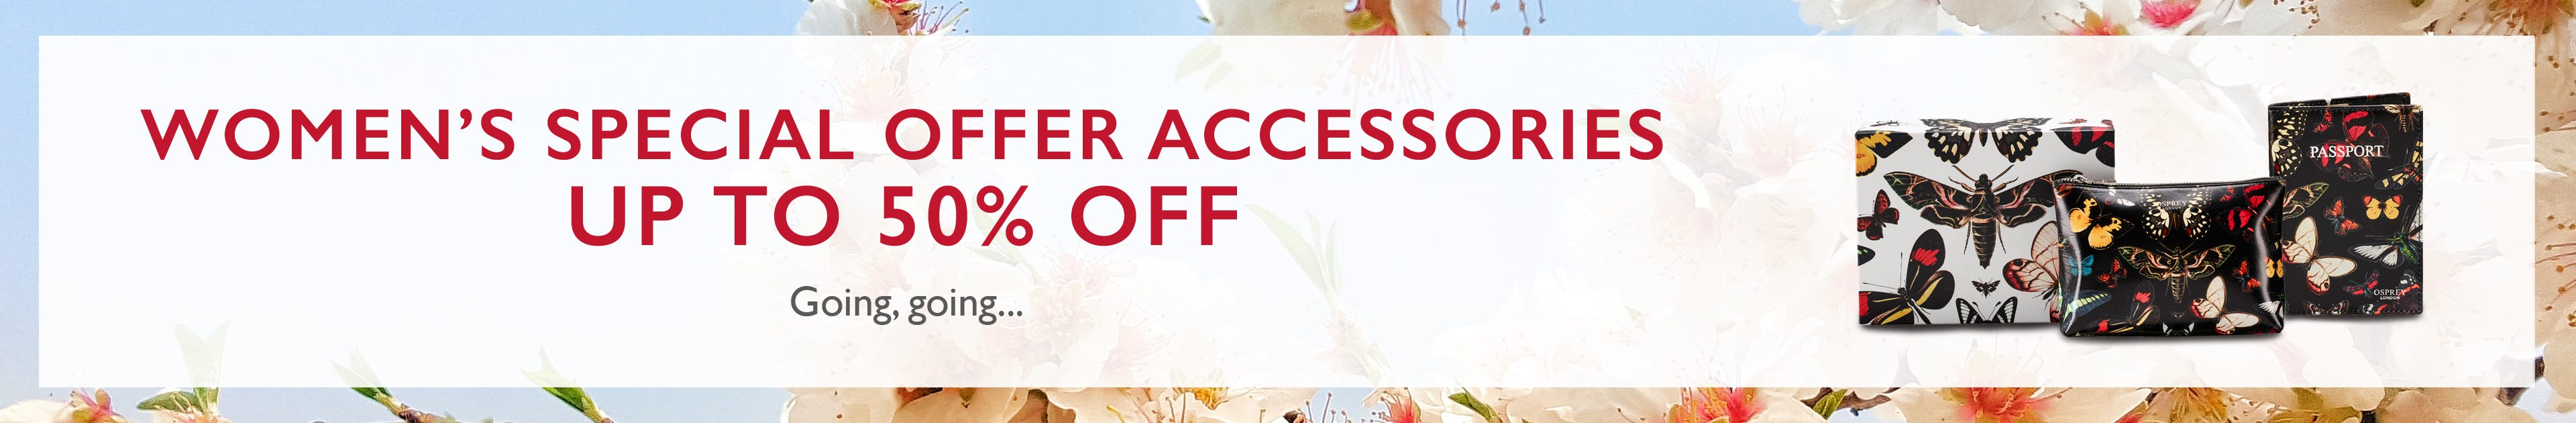 Women's Special Offer Accessories